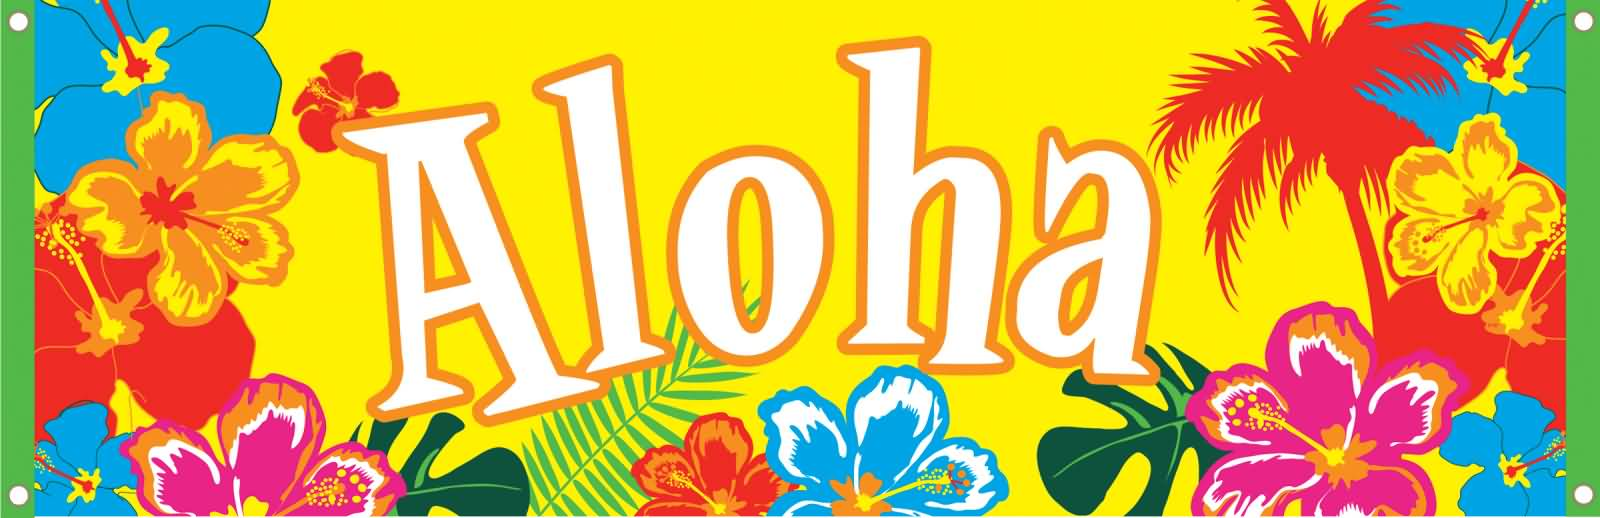 Aloha Colorful Flowers Picture